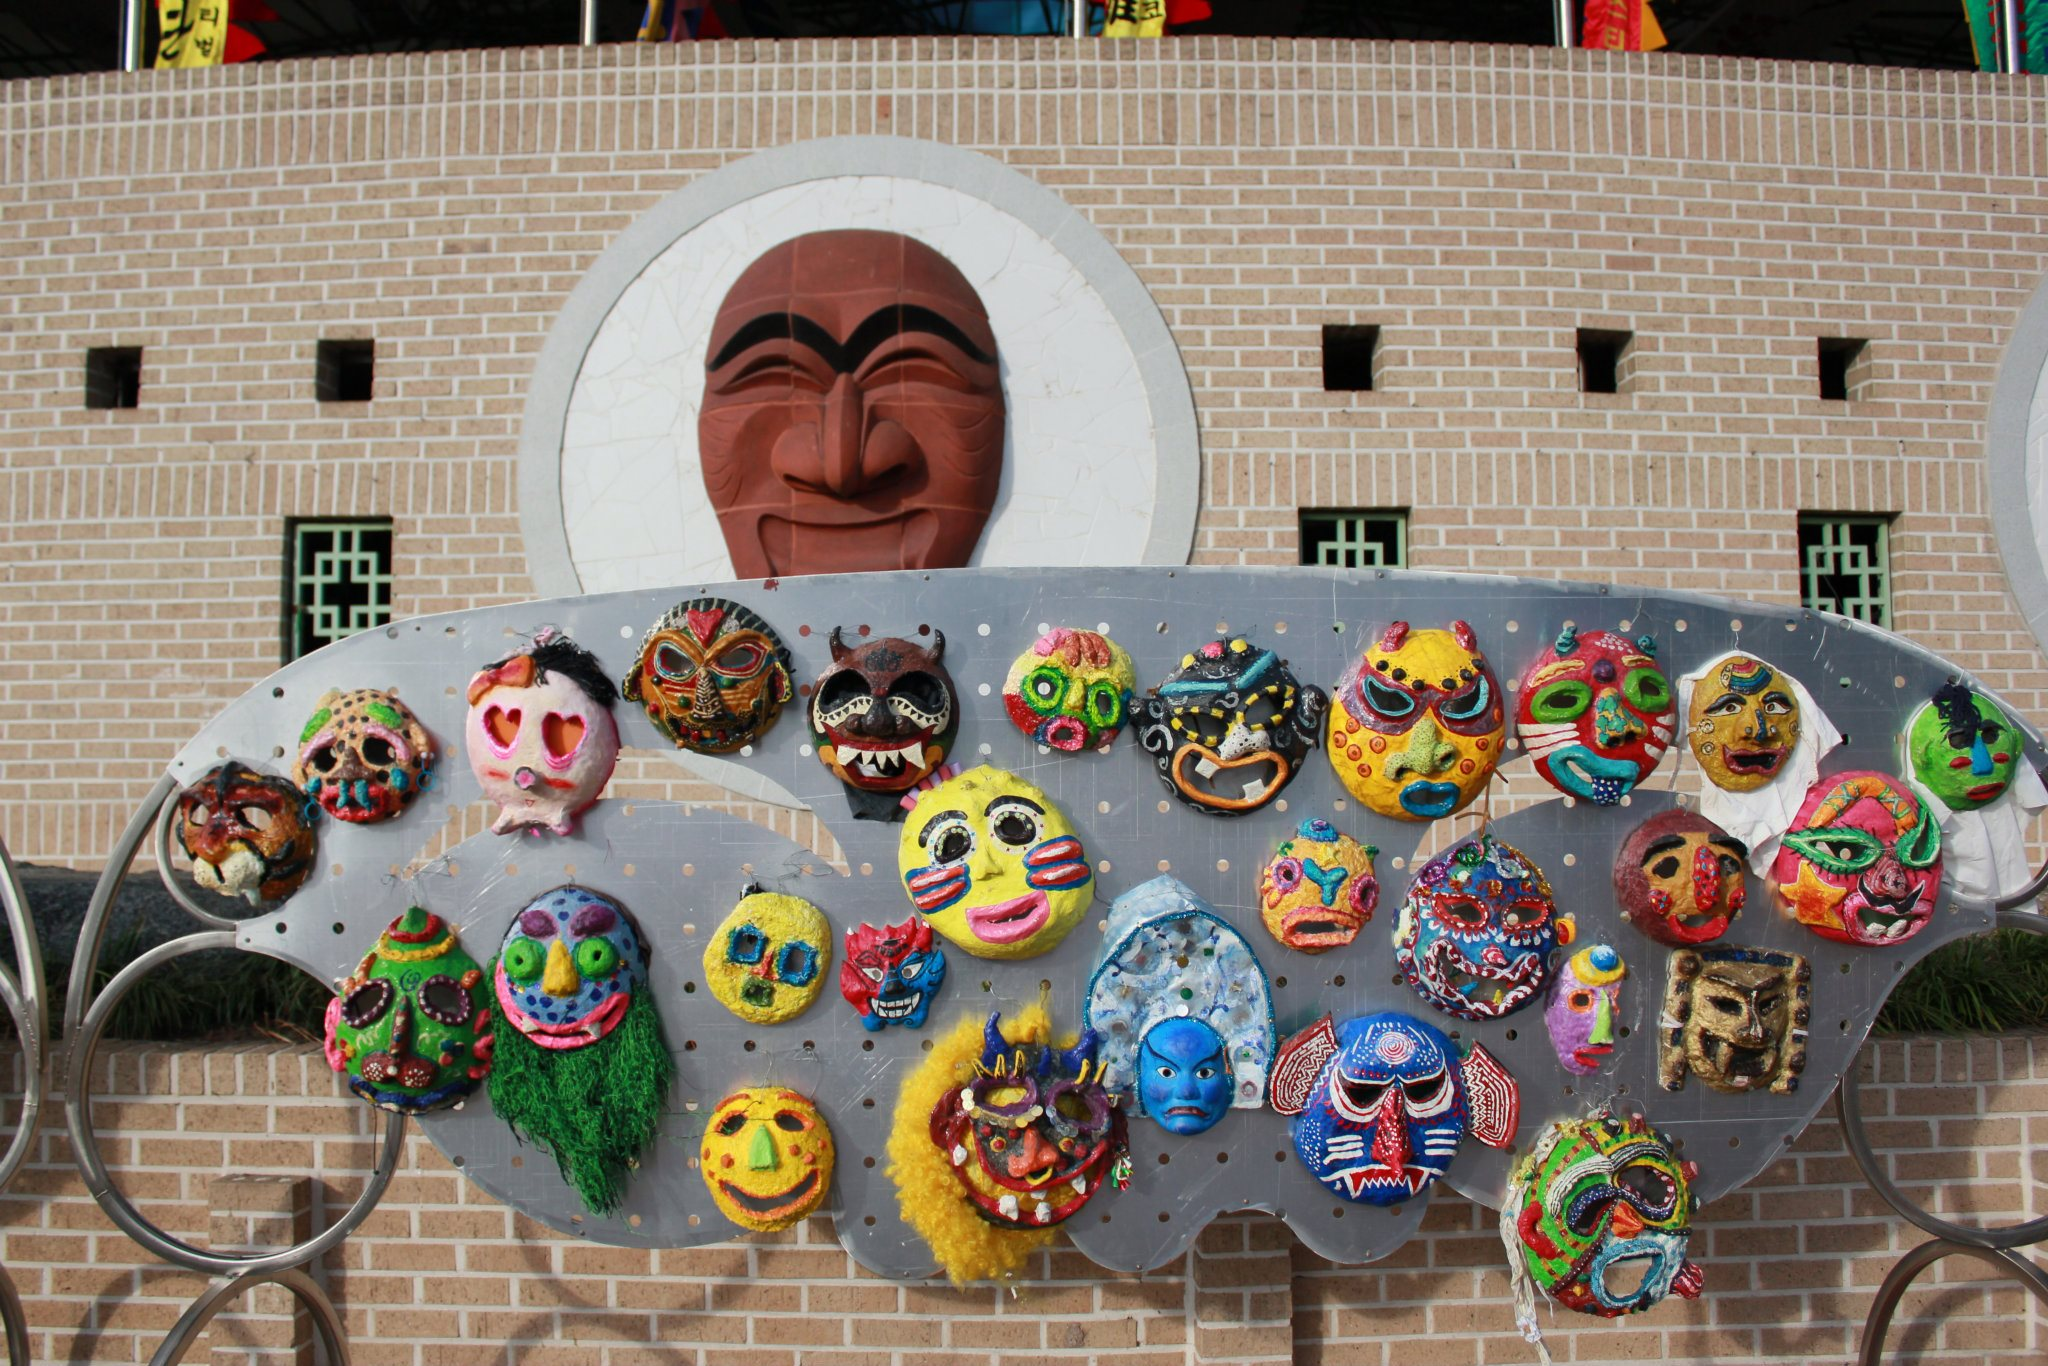 Masks of varying sizes, colors and shapes are a familiar sight at the festival. Photo courtesy of Gerardo Francisco